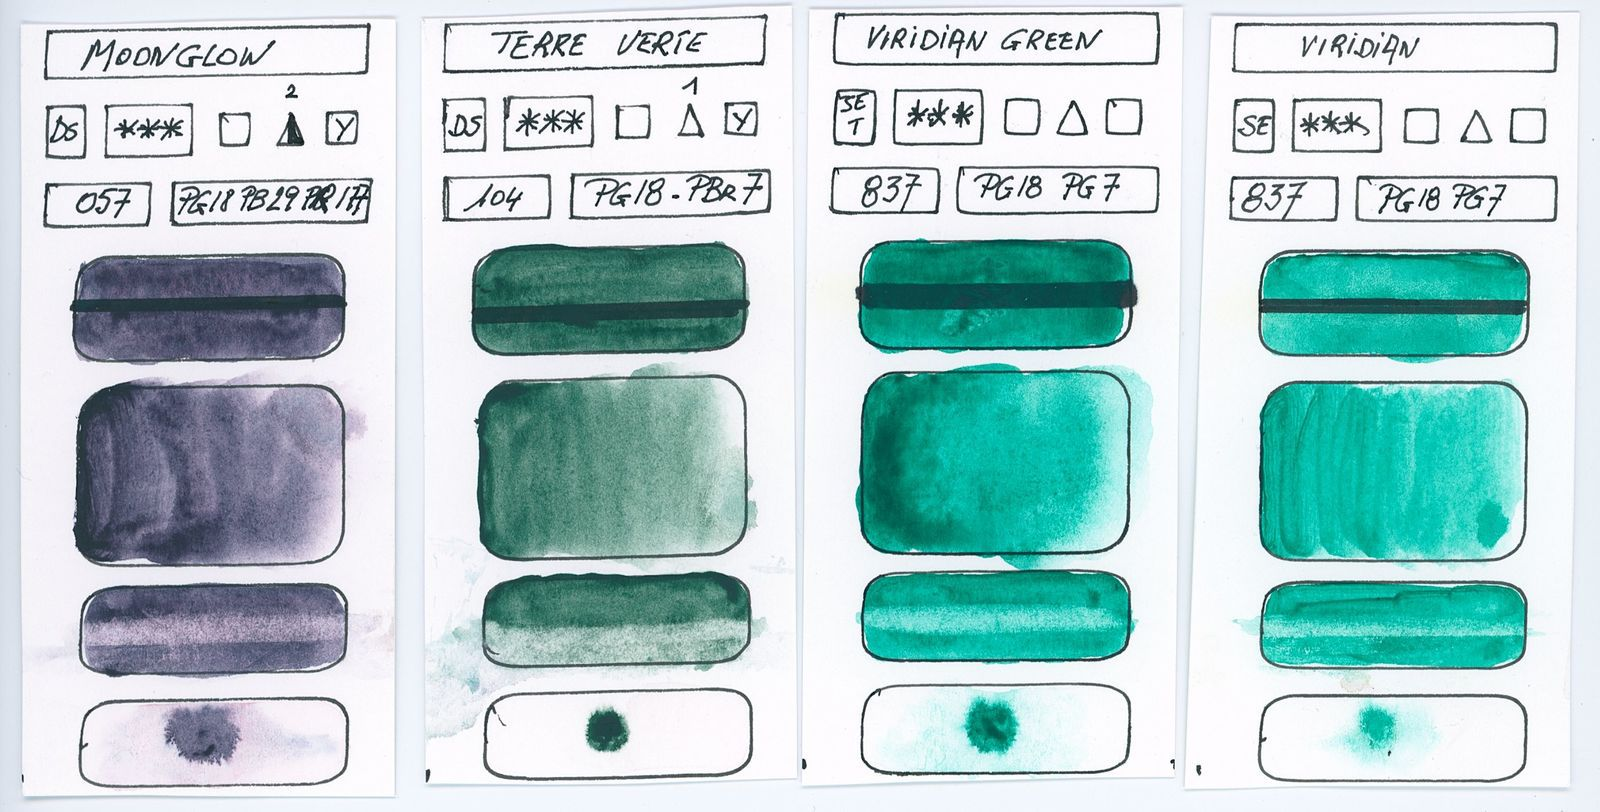 Swatches of Green watercolor paints from different manufacturer made with pigment P18